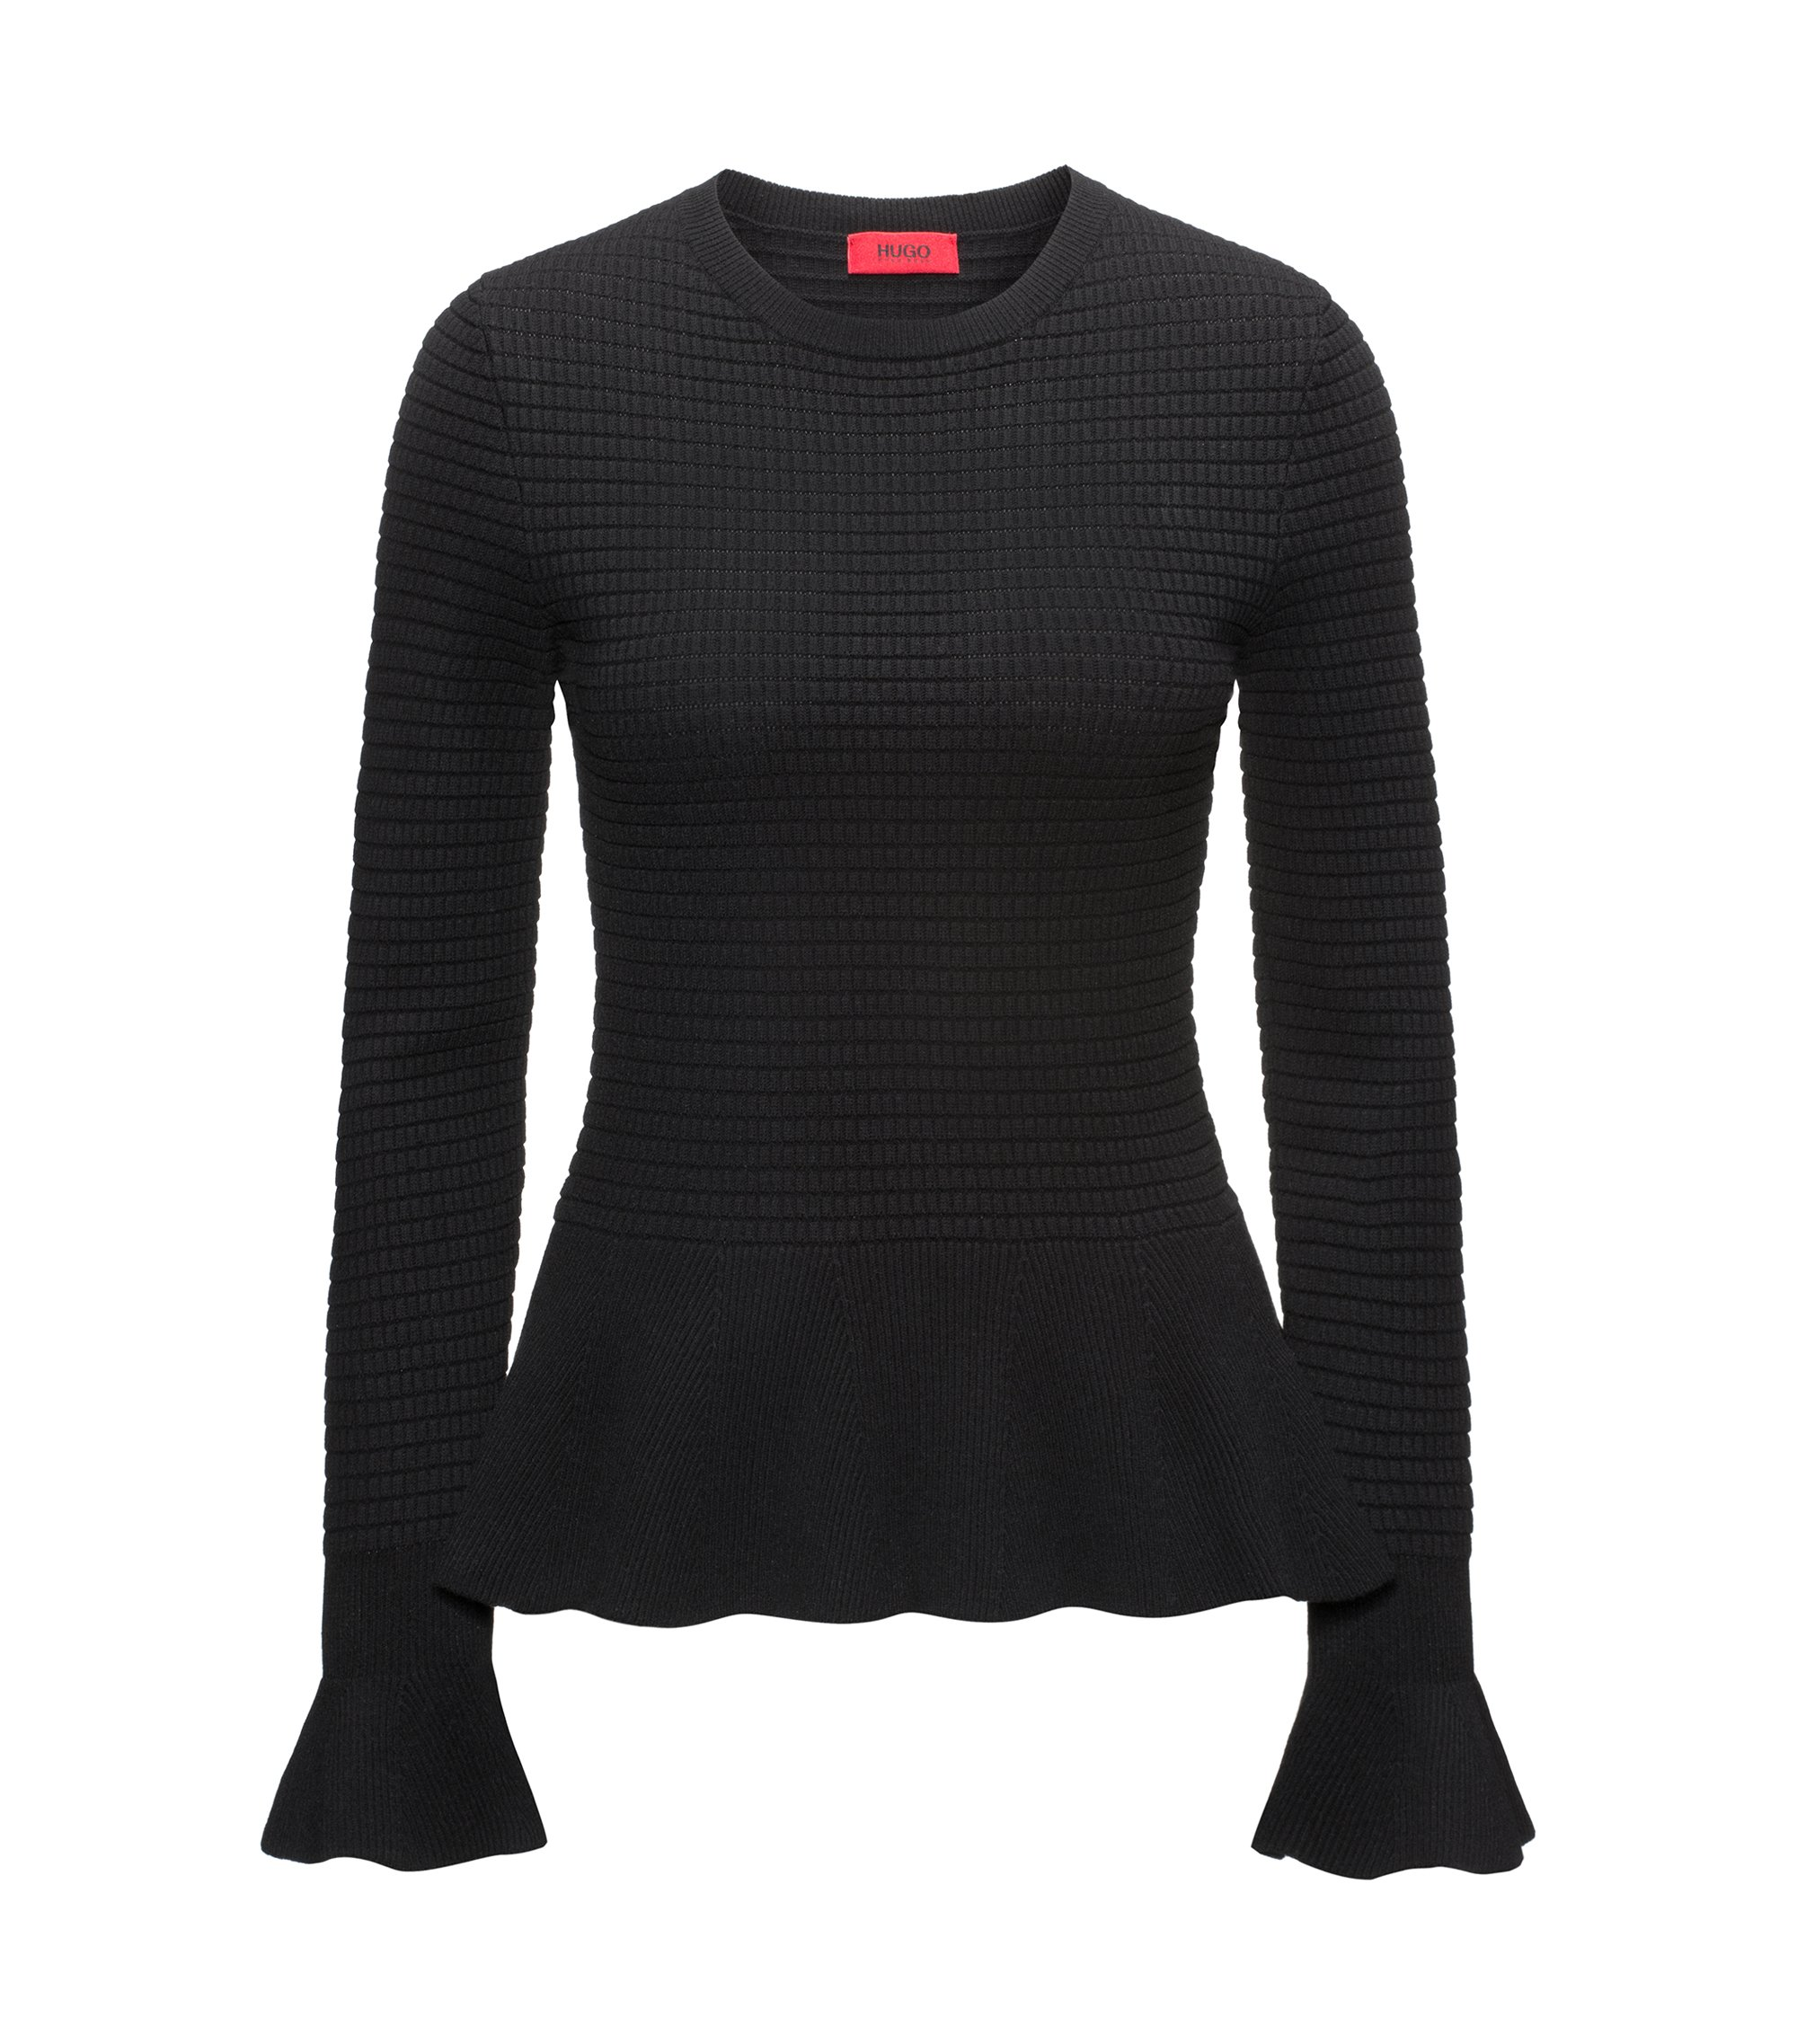 Peplum-hem knitted sweater in mixed knits, Black